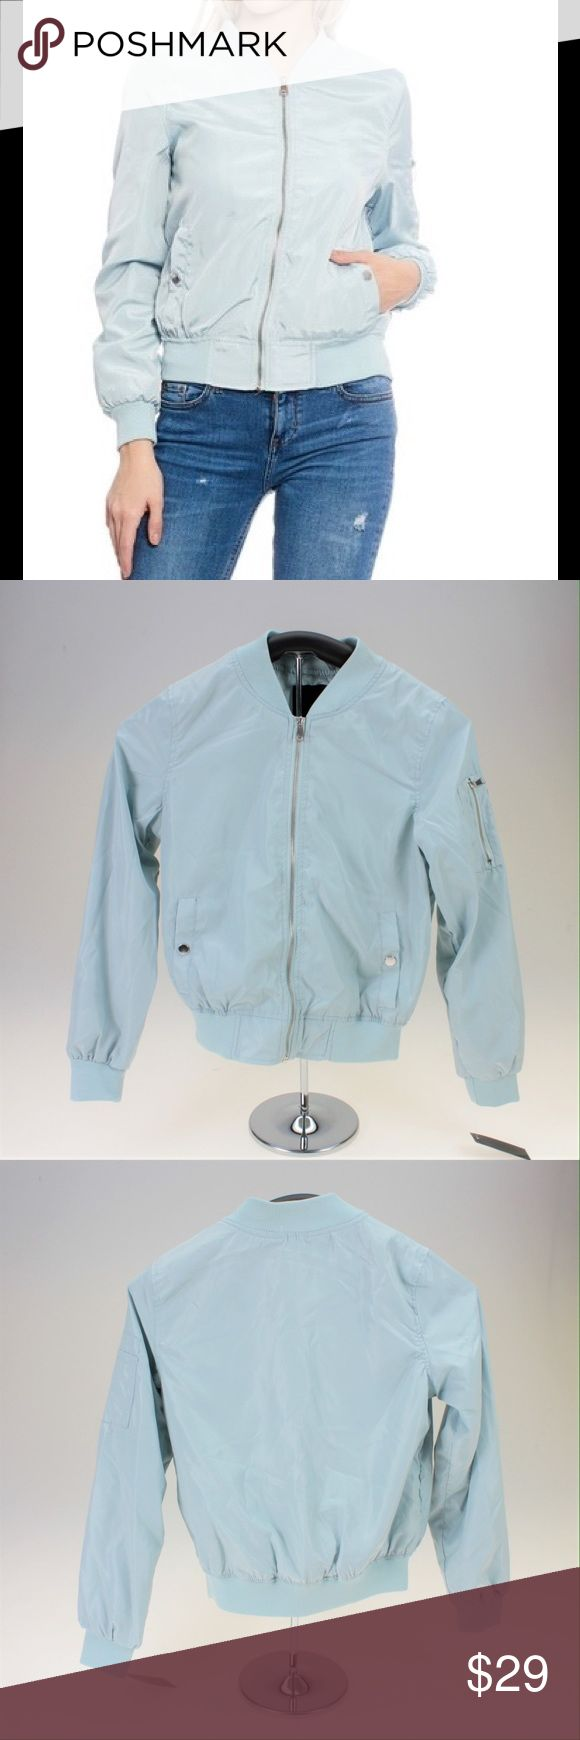 """Baby Blue Lightweight Bomber Jacket This adorable jacket is the trendy piece your wardrobe needs. It's lightweight material makes it comfortable to wear in spring and summer weather. This is a boutique piece, but has a manufacturer defect along the zipper lining as shown in the photos. There is also a small mark on the collar that occurred during storage. Willing to accept a reasonable offer with these things considered. The jacket measures approximately 36"""" around the bust and is about 22""""…"""